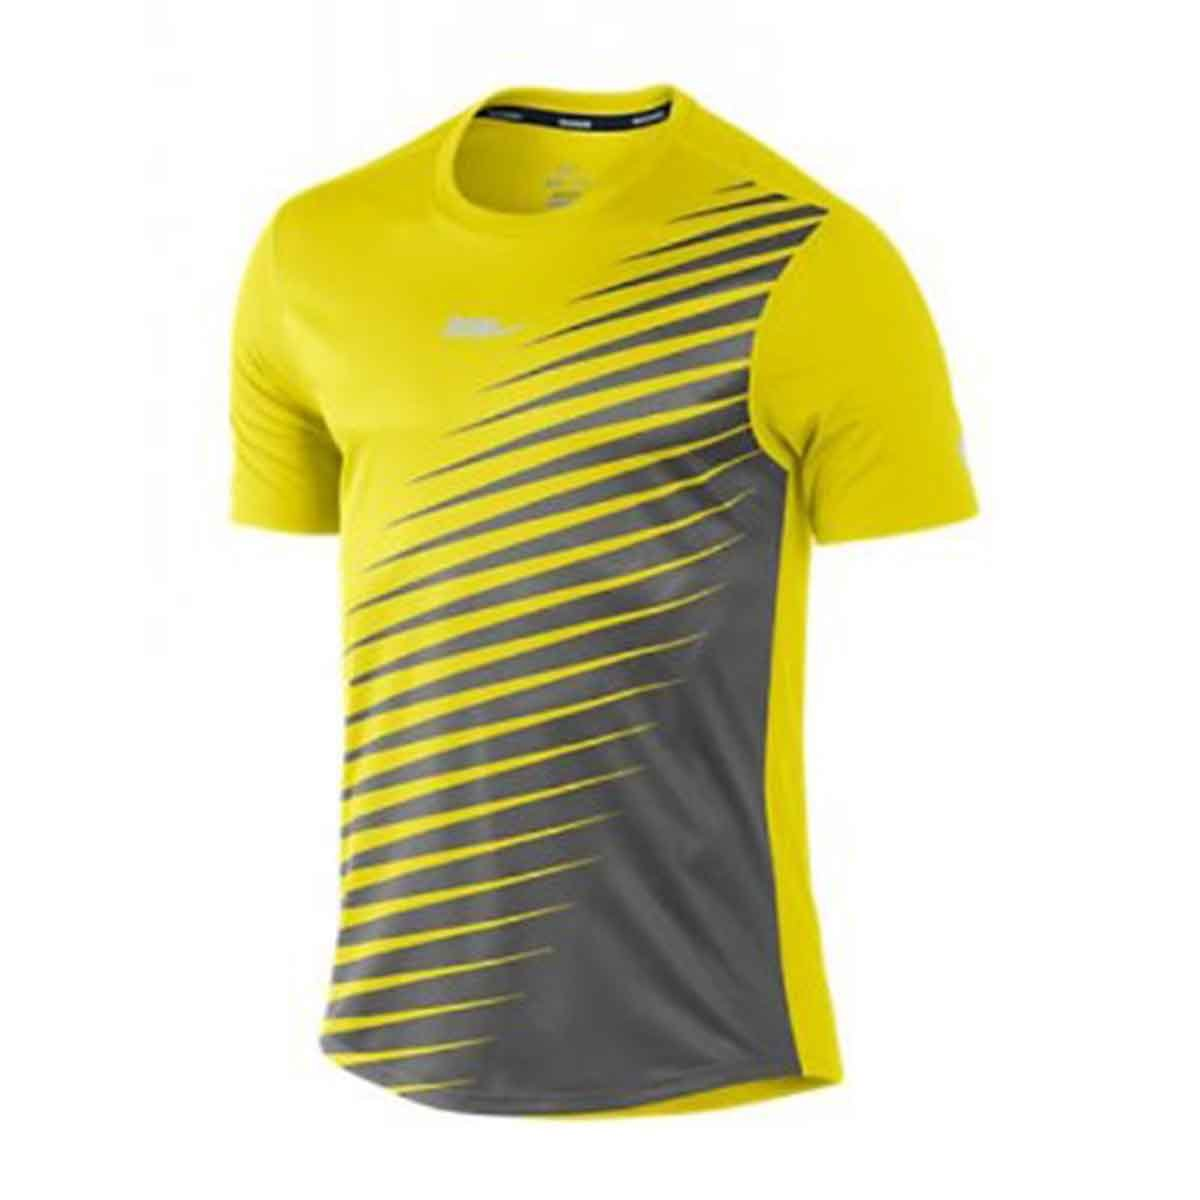 3f07d873ab233 Buy Nike-Men's-Sublimated-Running T-Shirt (Yellow) Online India